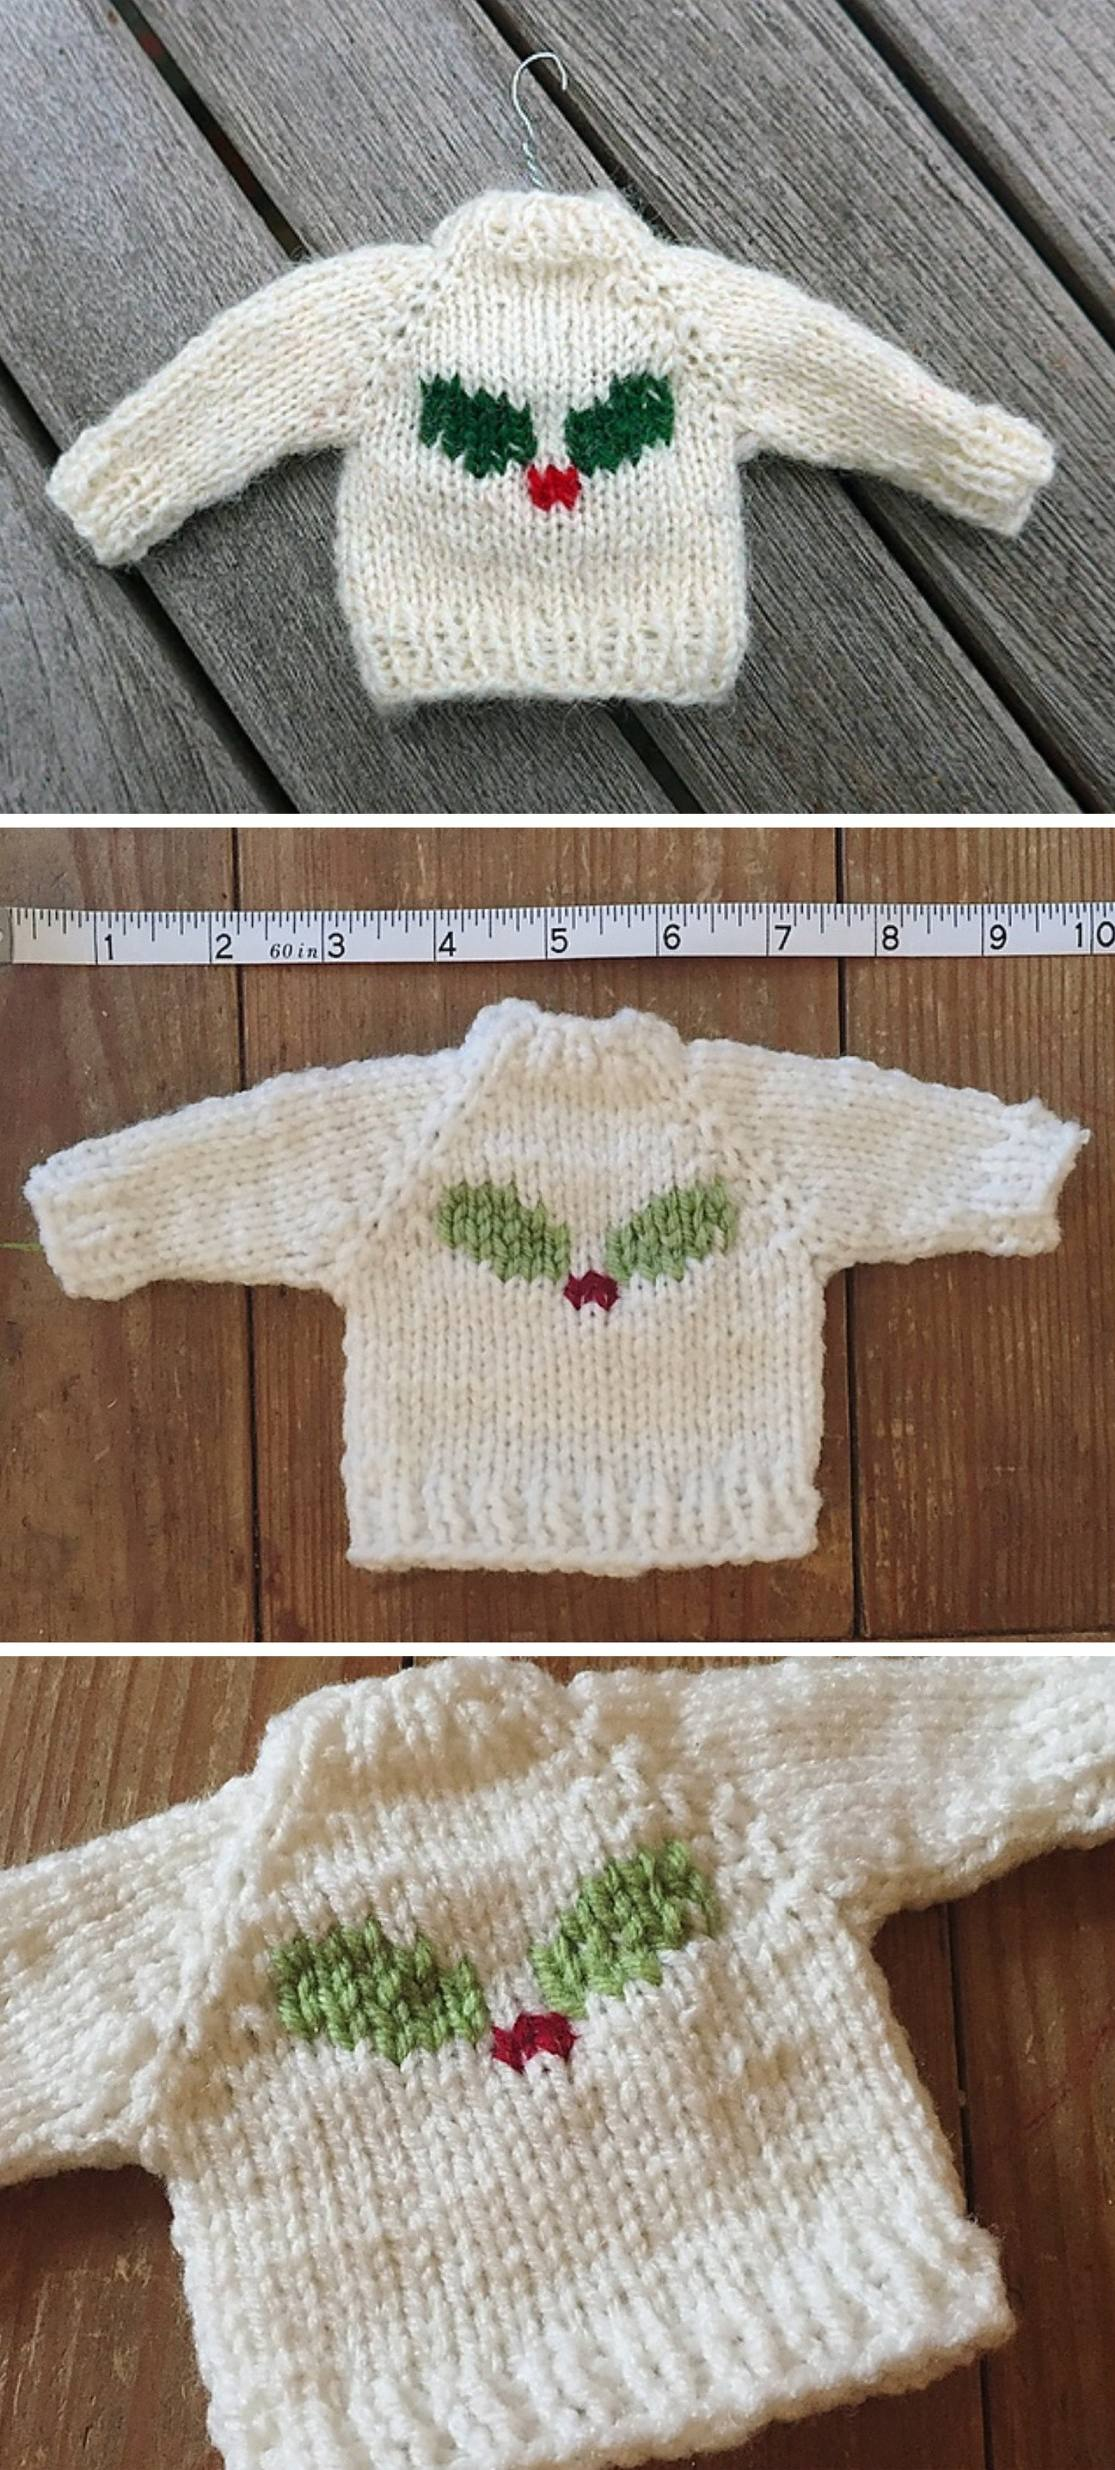 Mini Sweater For Christmas Tree